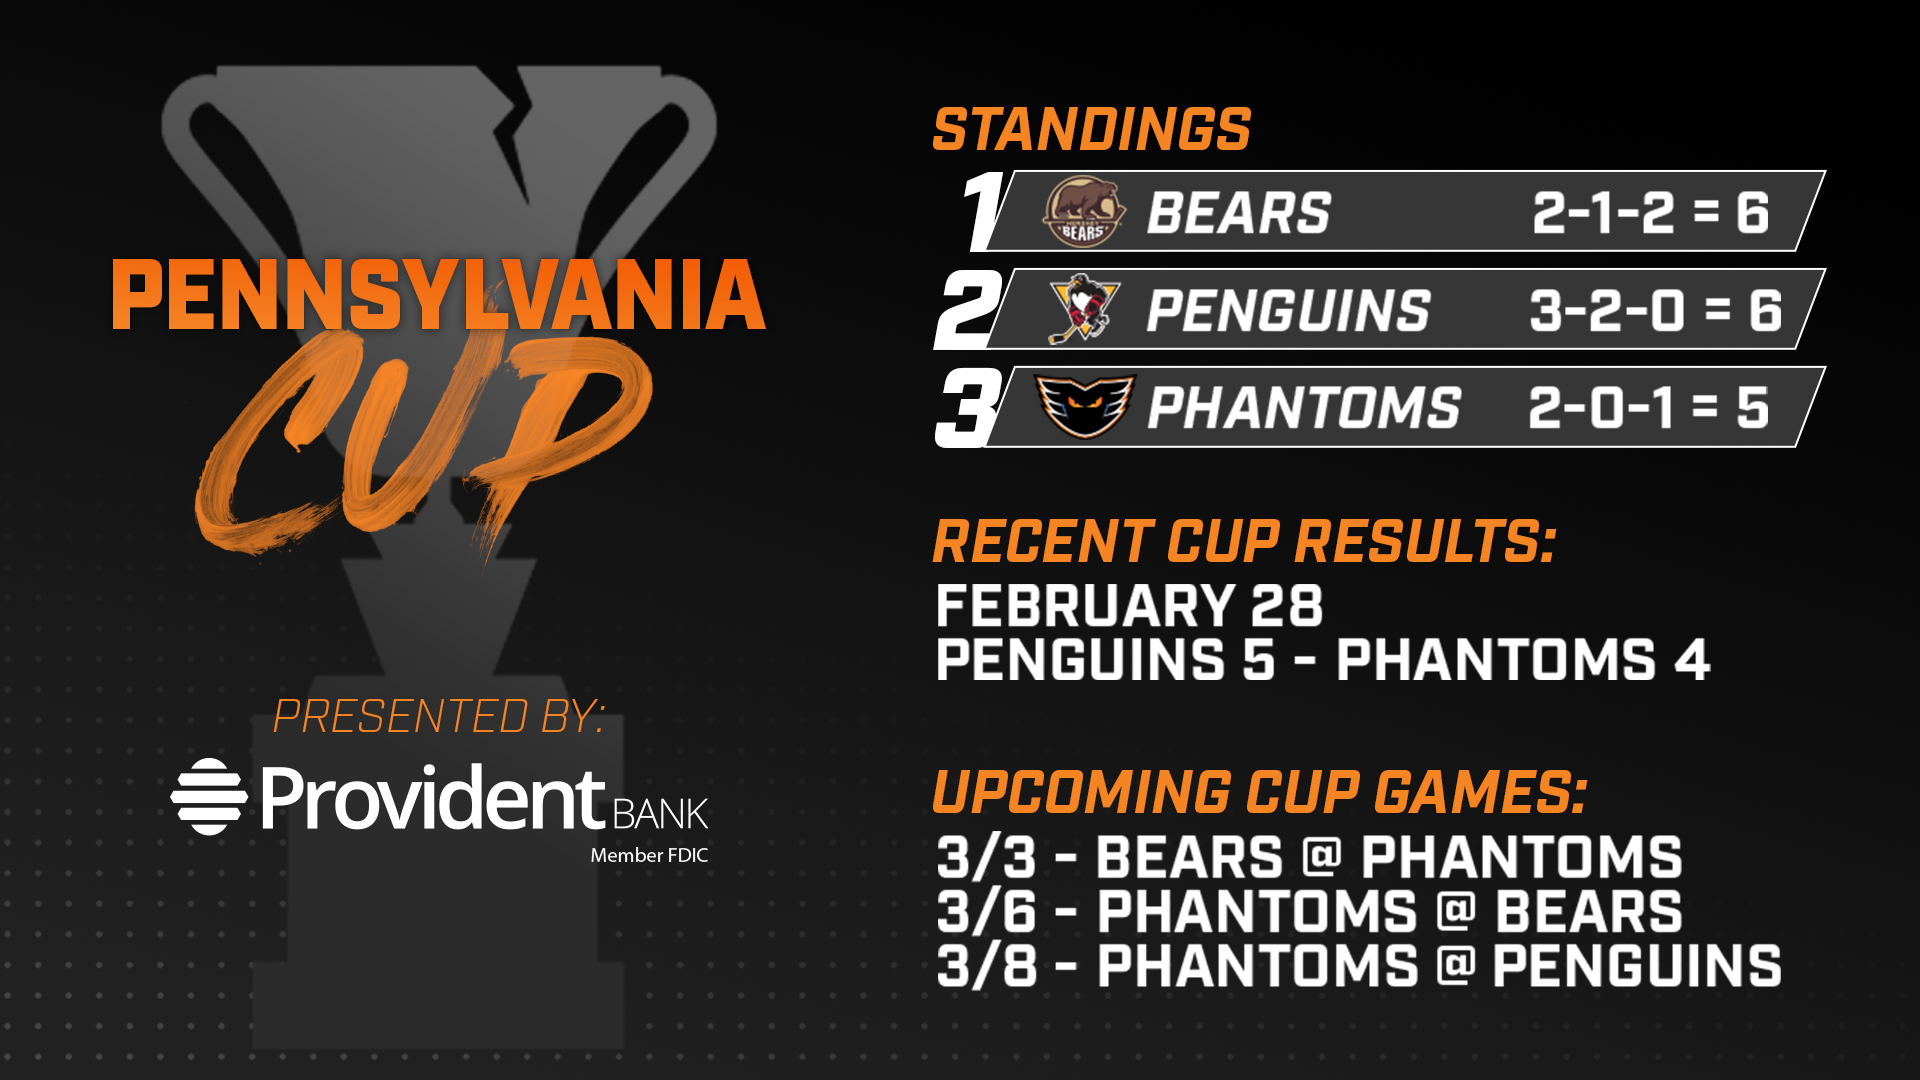 Pennsylvania Cup presented by Provident Bank